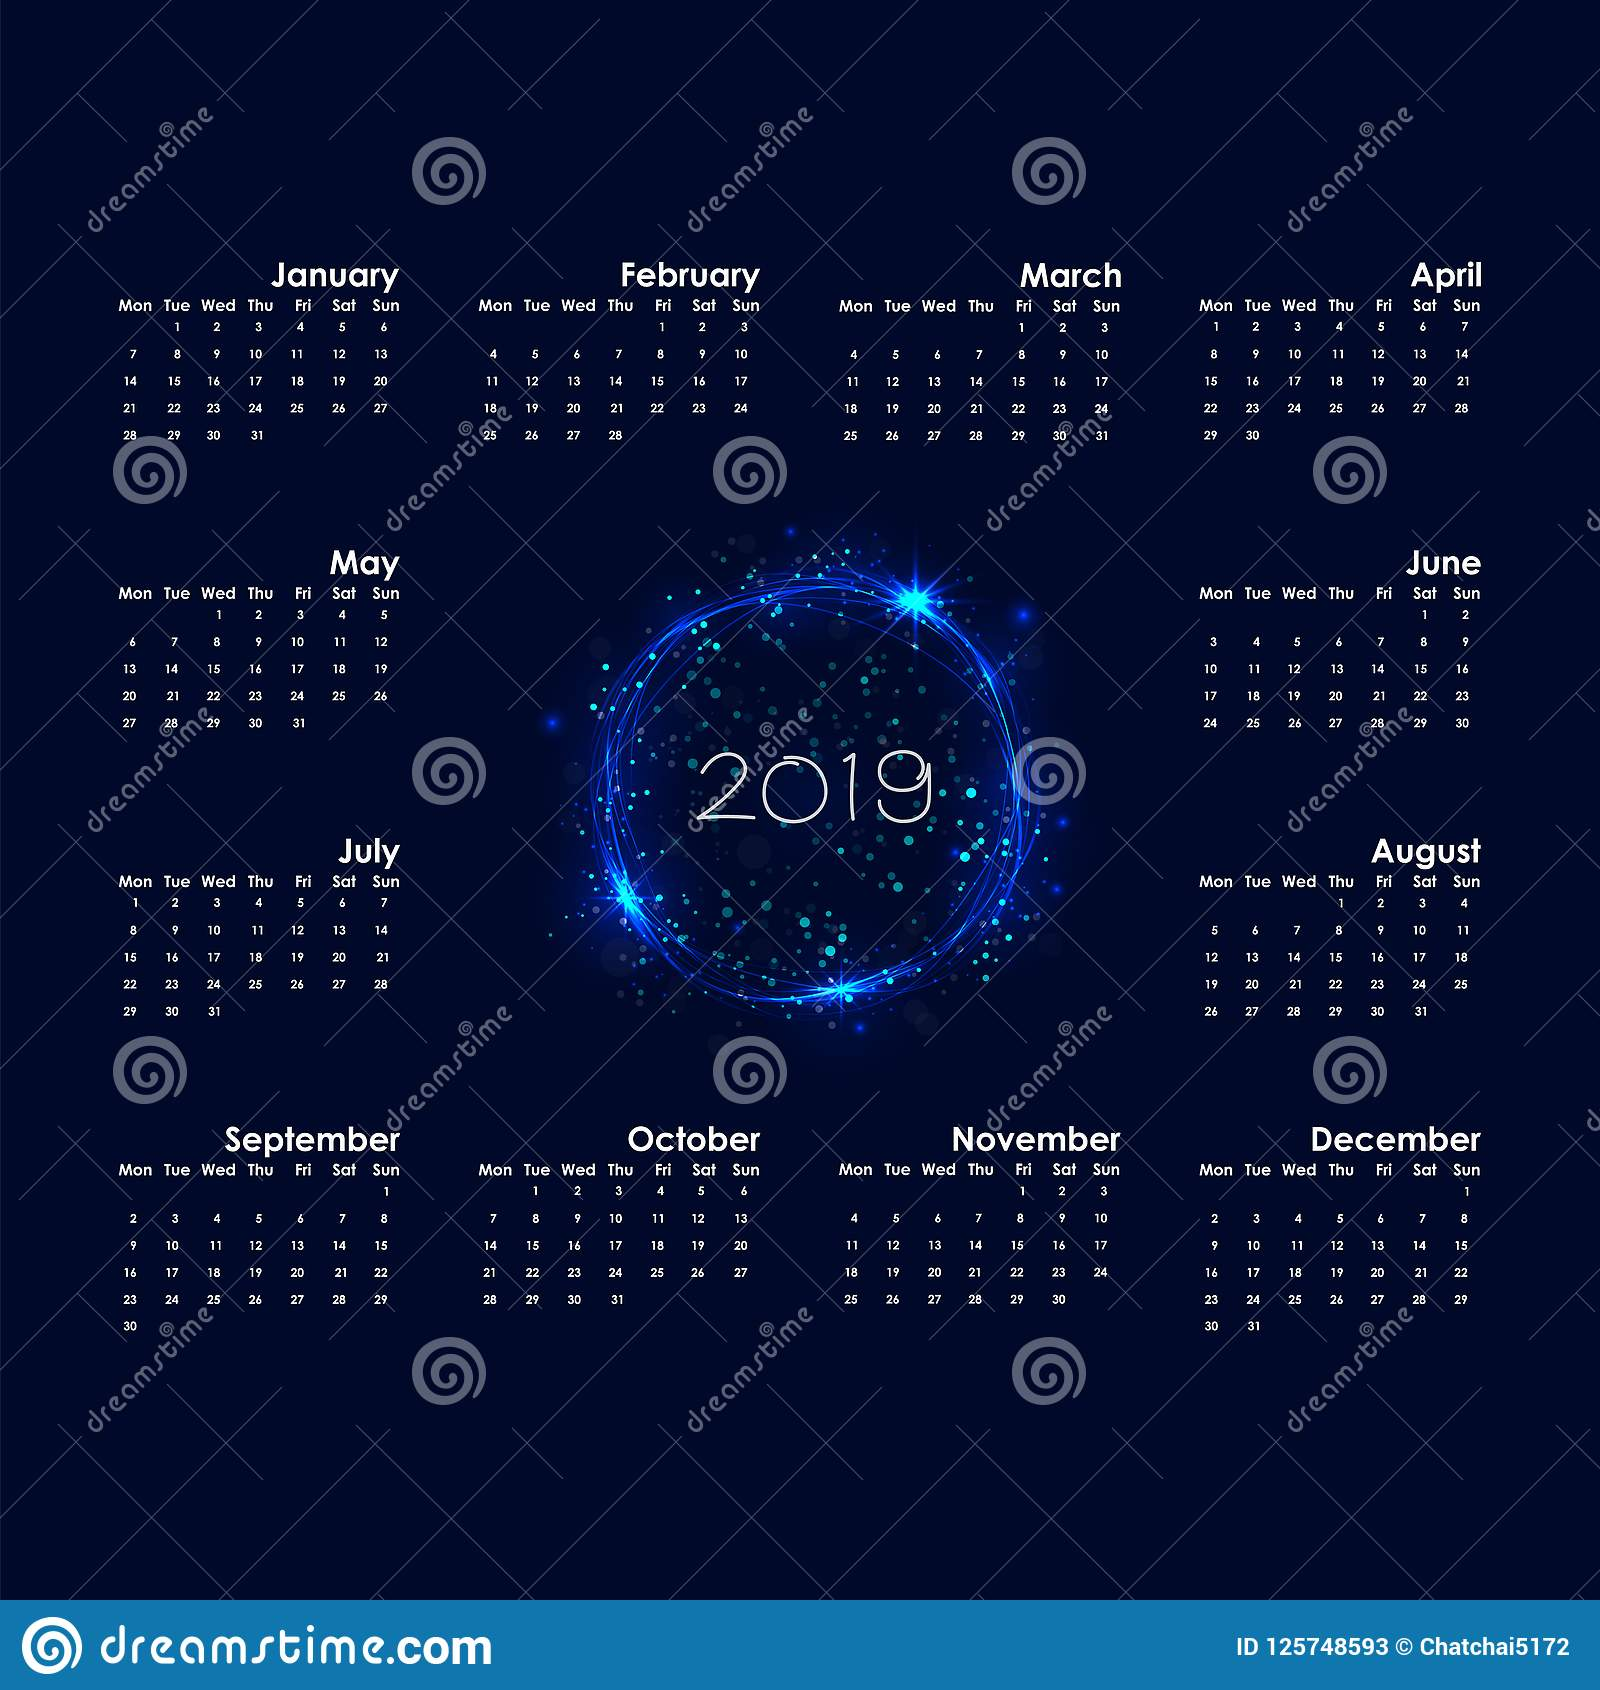 2019 calendar templatestarts mondayyearly calendar vector design stationery templatehappy new year 2019 backgroundabstract burning circles with glitter